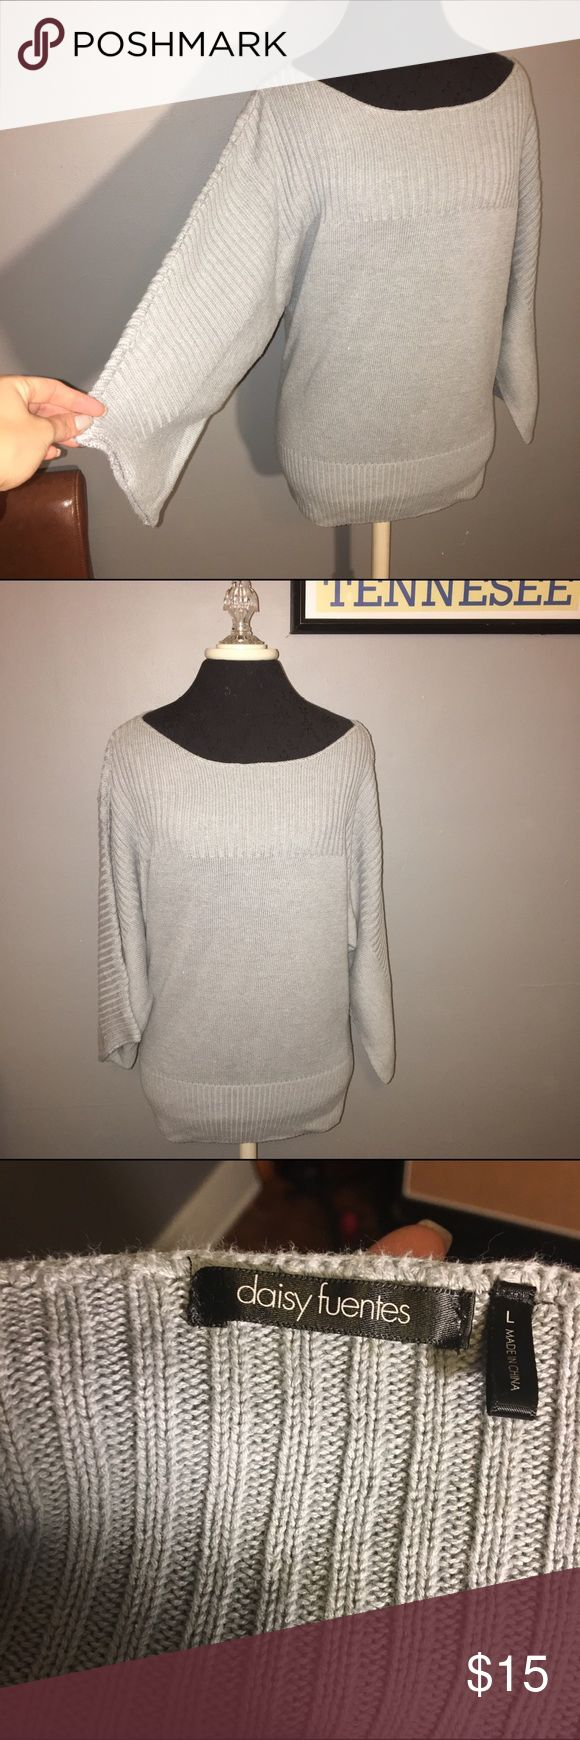 Daisy Fuentes large tunic sweater Daisy Fuentes large tunic sweater with cropped wide sleeves Daisy Fuentes Sweaters Crew & Scoop Necks